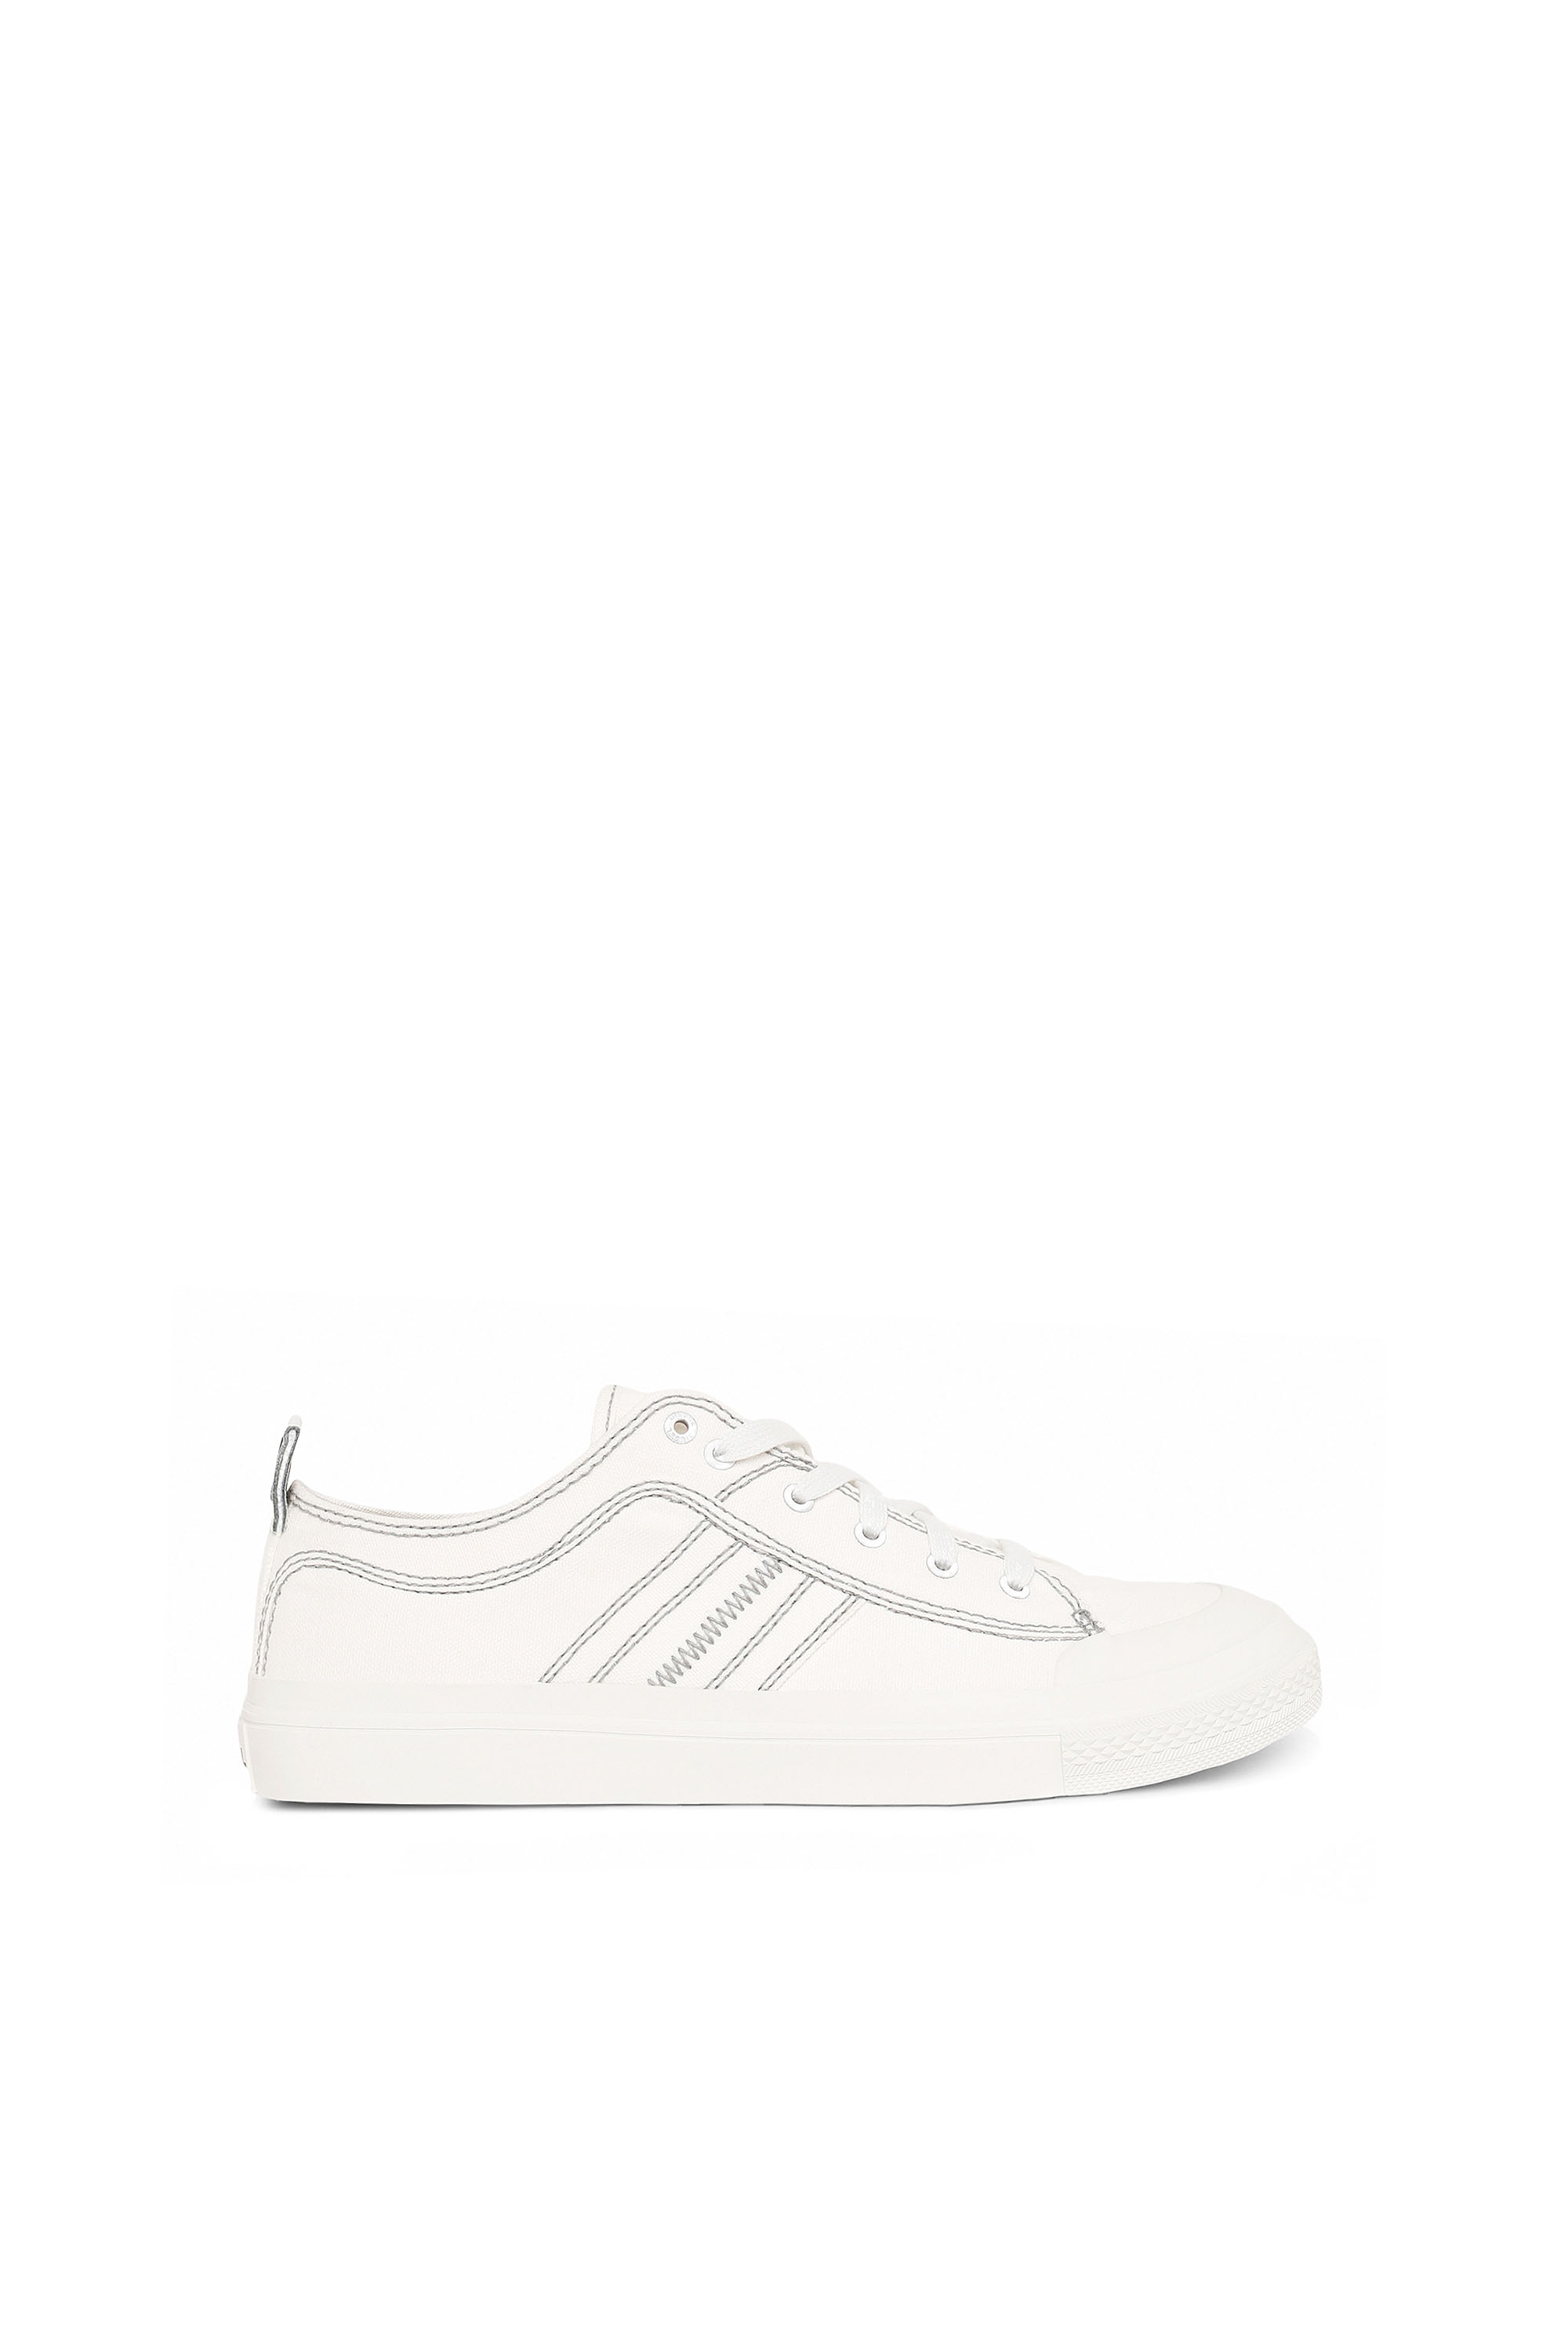 Diesel - S-ASTICO LOW LACE,  - Baskets - Image 1